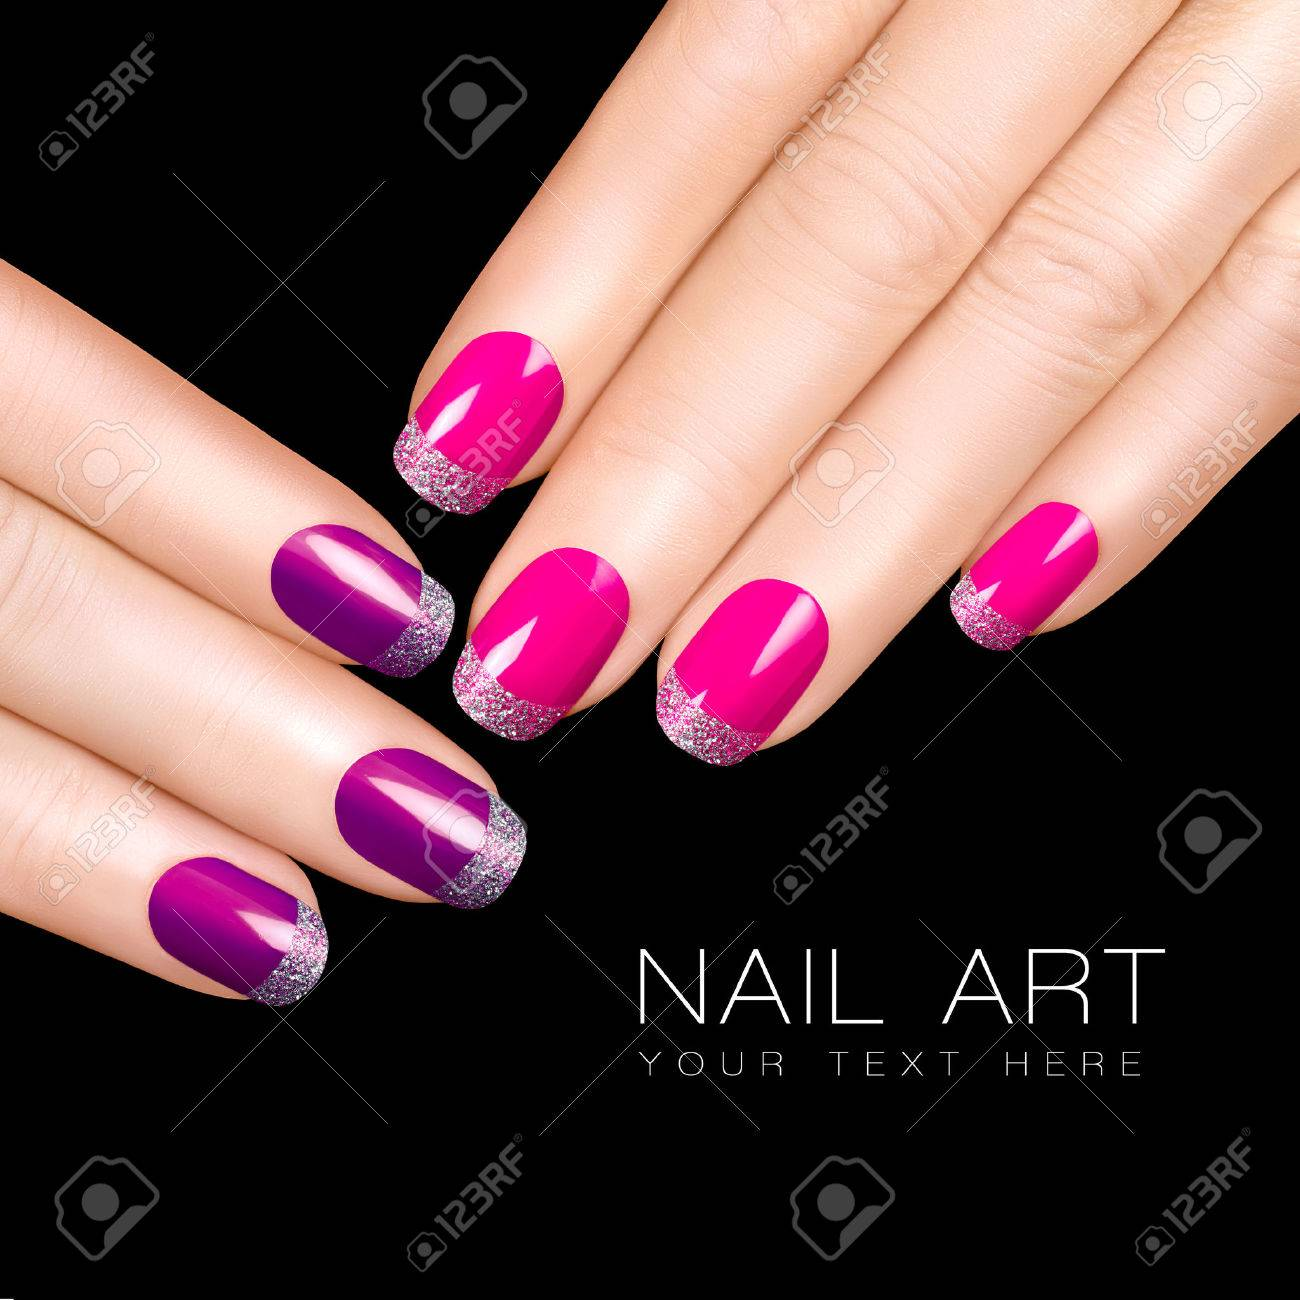 Holiday Nail Art Luxury Polish Glitter Stickers In Purple Pink And